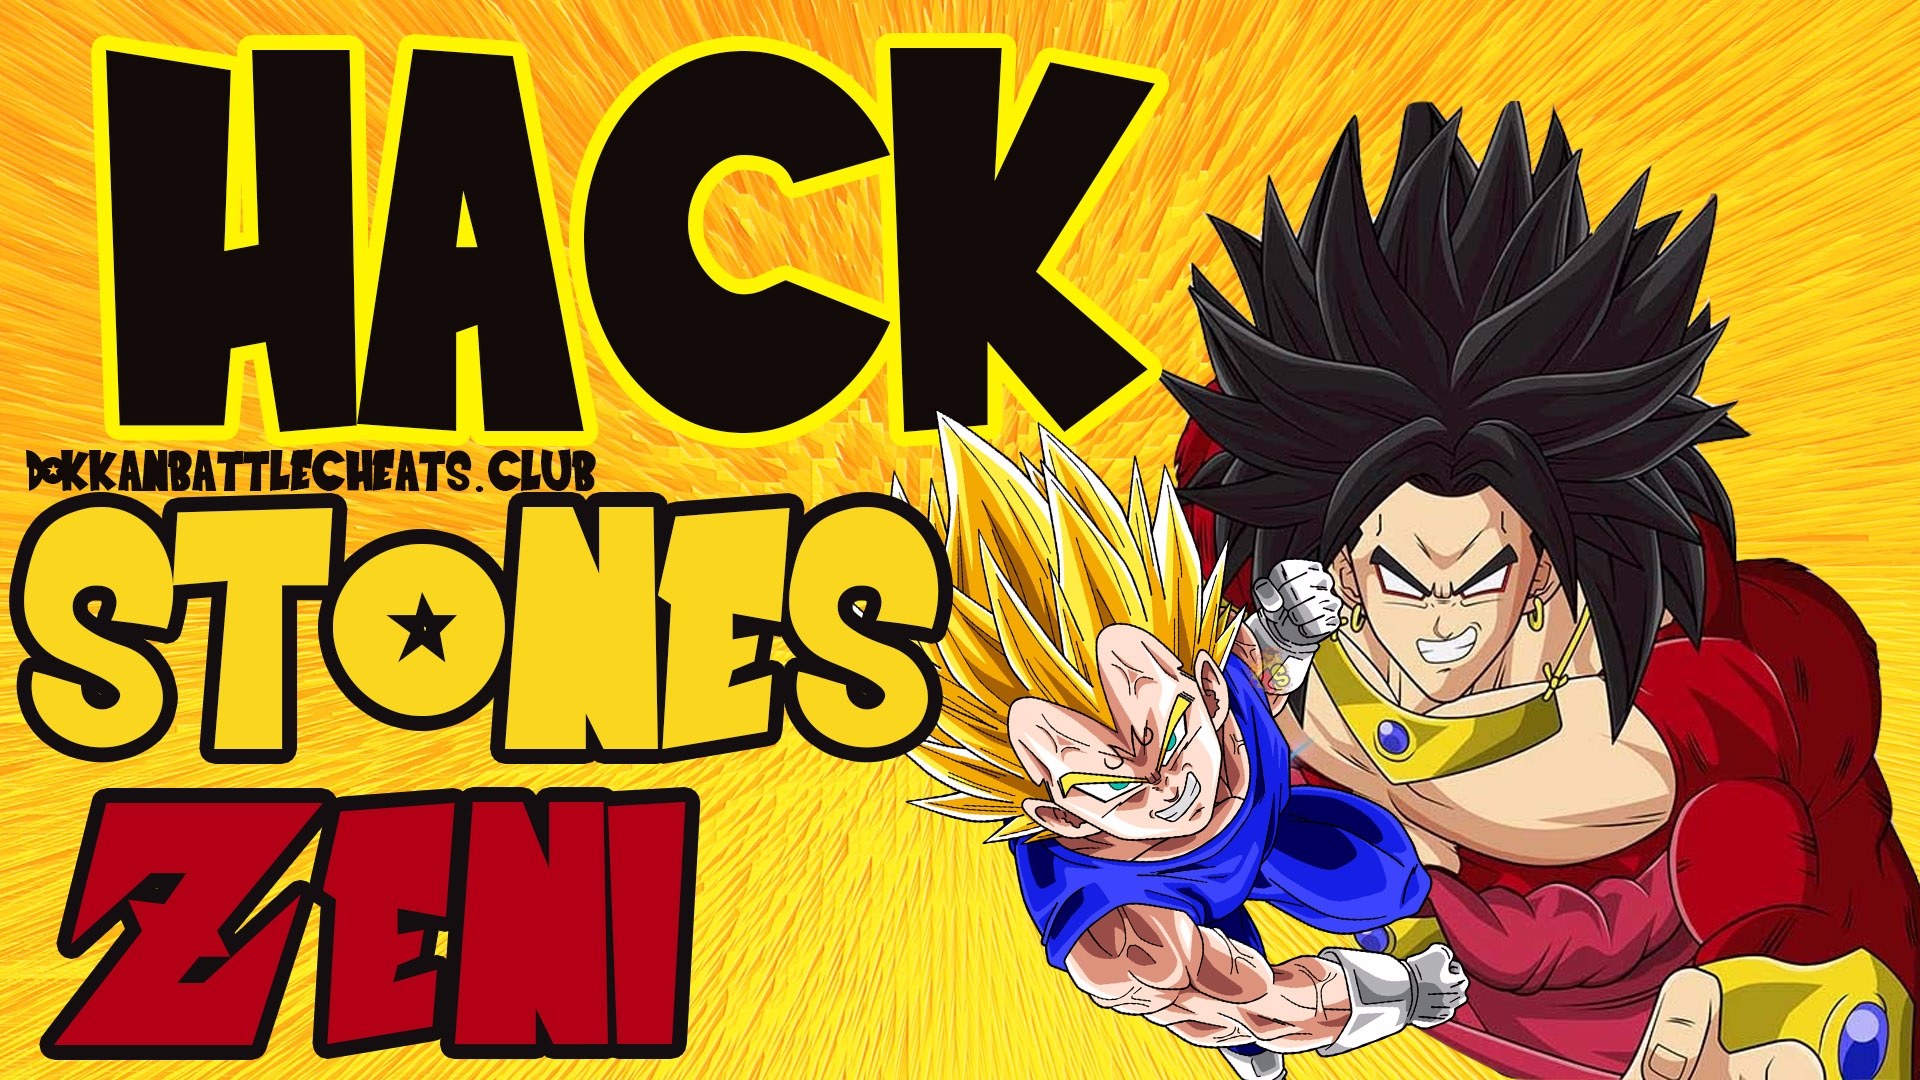 Dragon Ball Z Dokkan Battle Hack (@dragonballhack) Cover Image